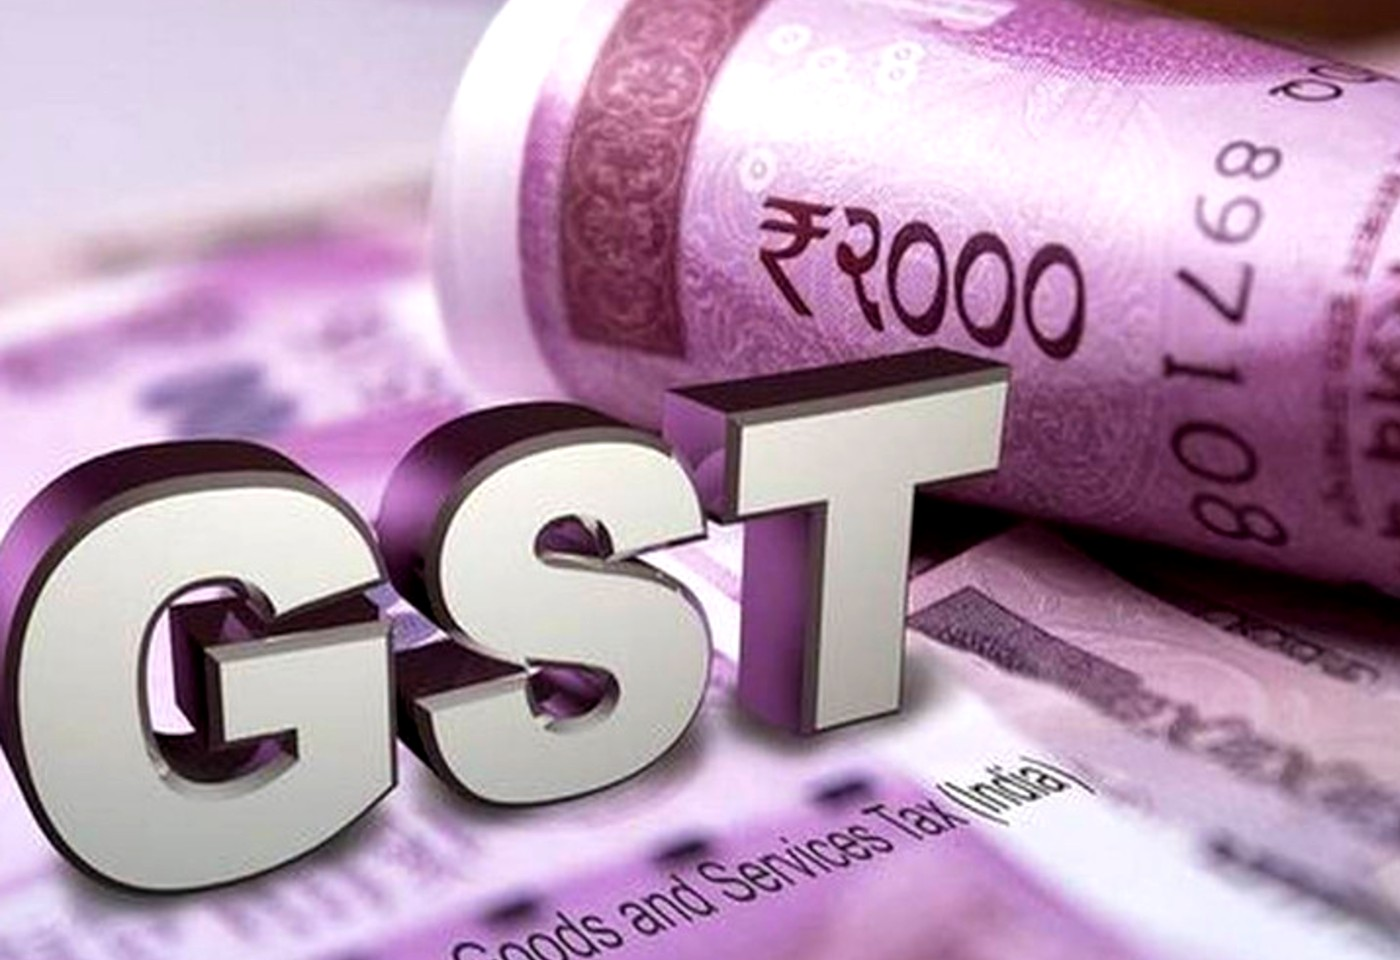 GST collection in March, the highest tax collection in the history of GST